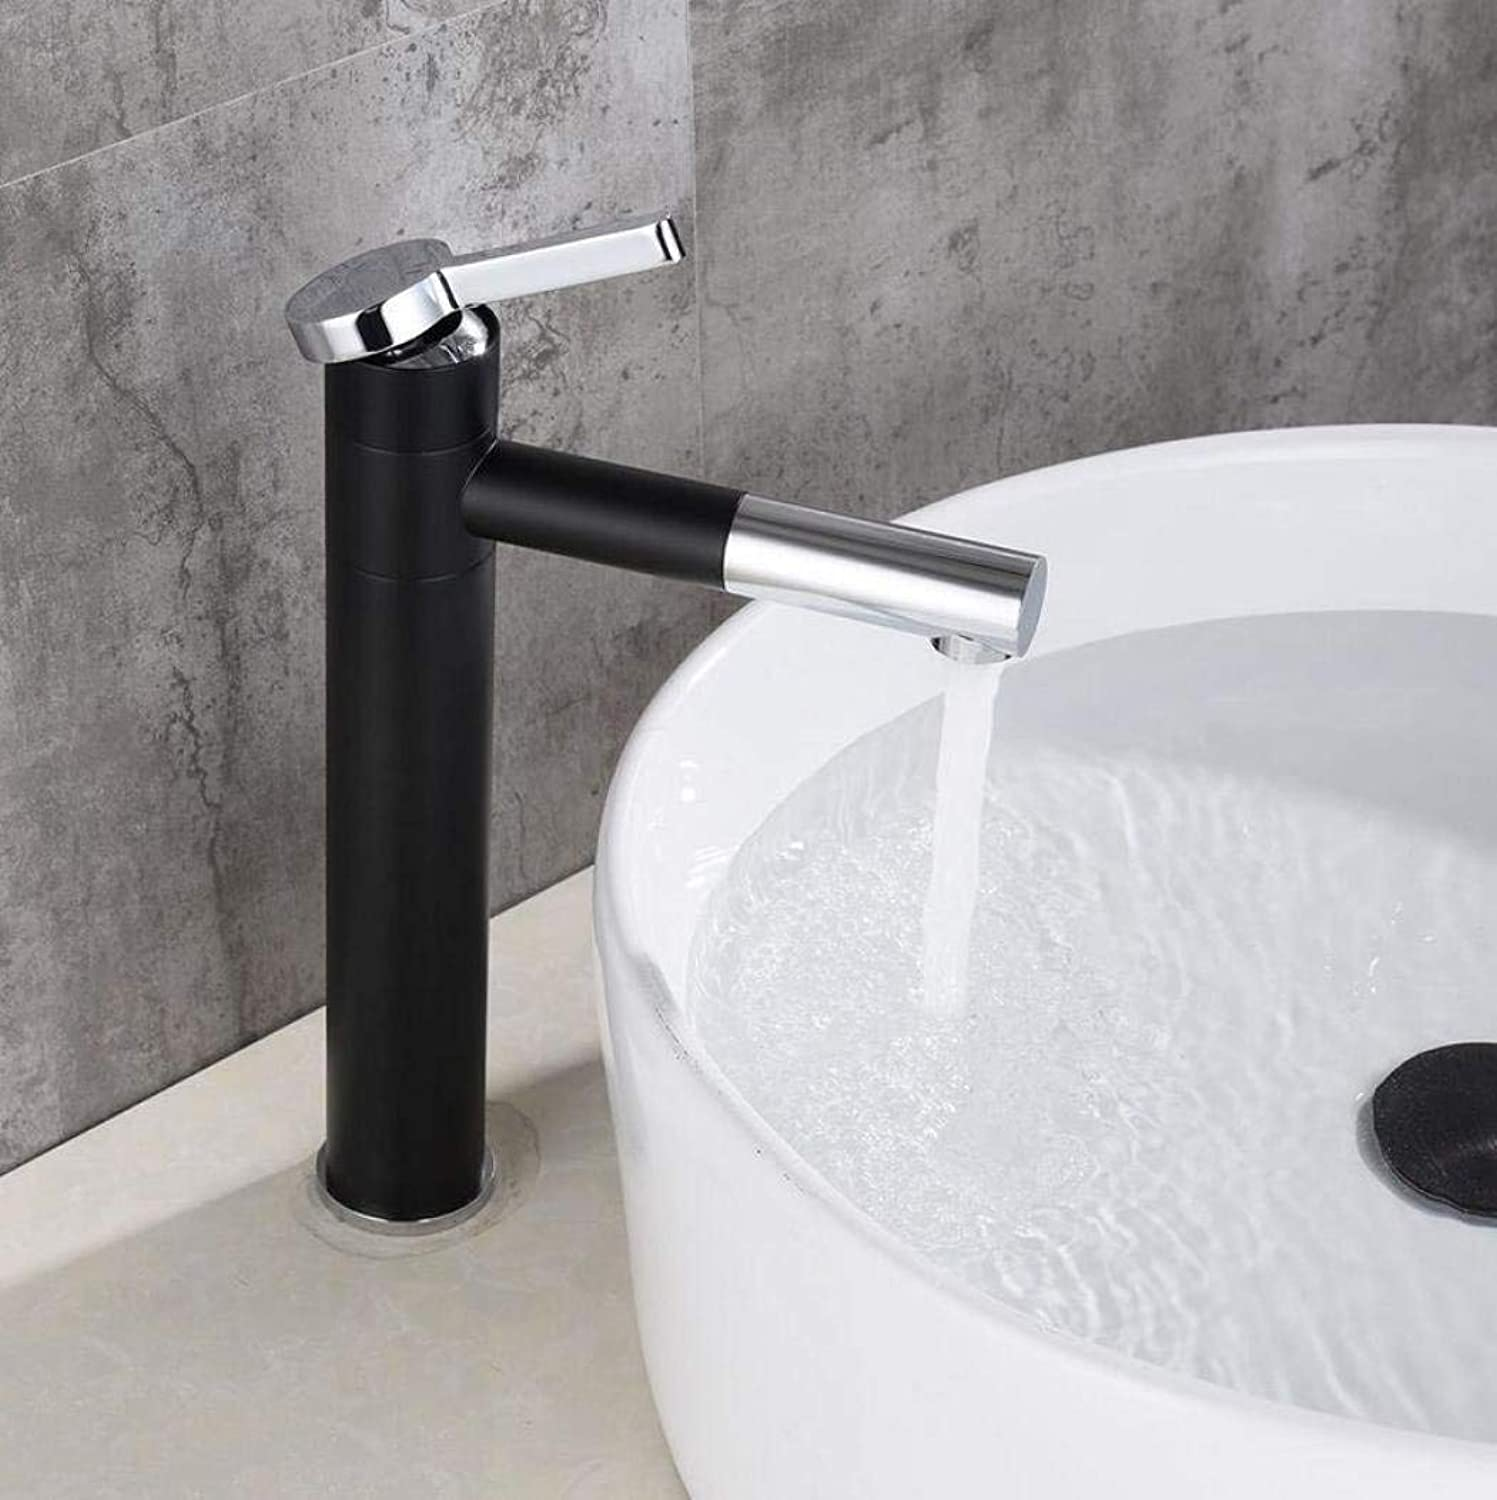 Bathroom Kitchen Sink Faucet,Black Modern Design High Basin Single Handle Cold and Hot Mixing Faucet.